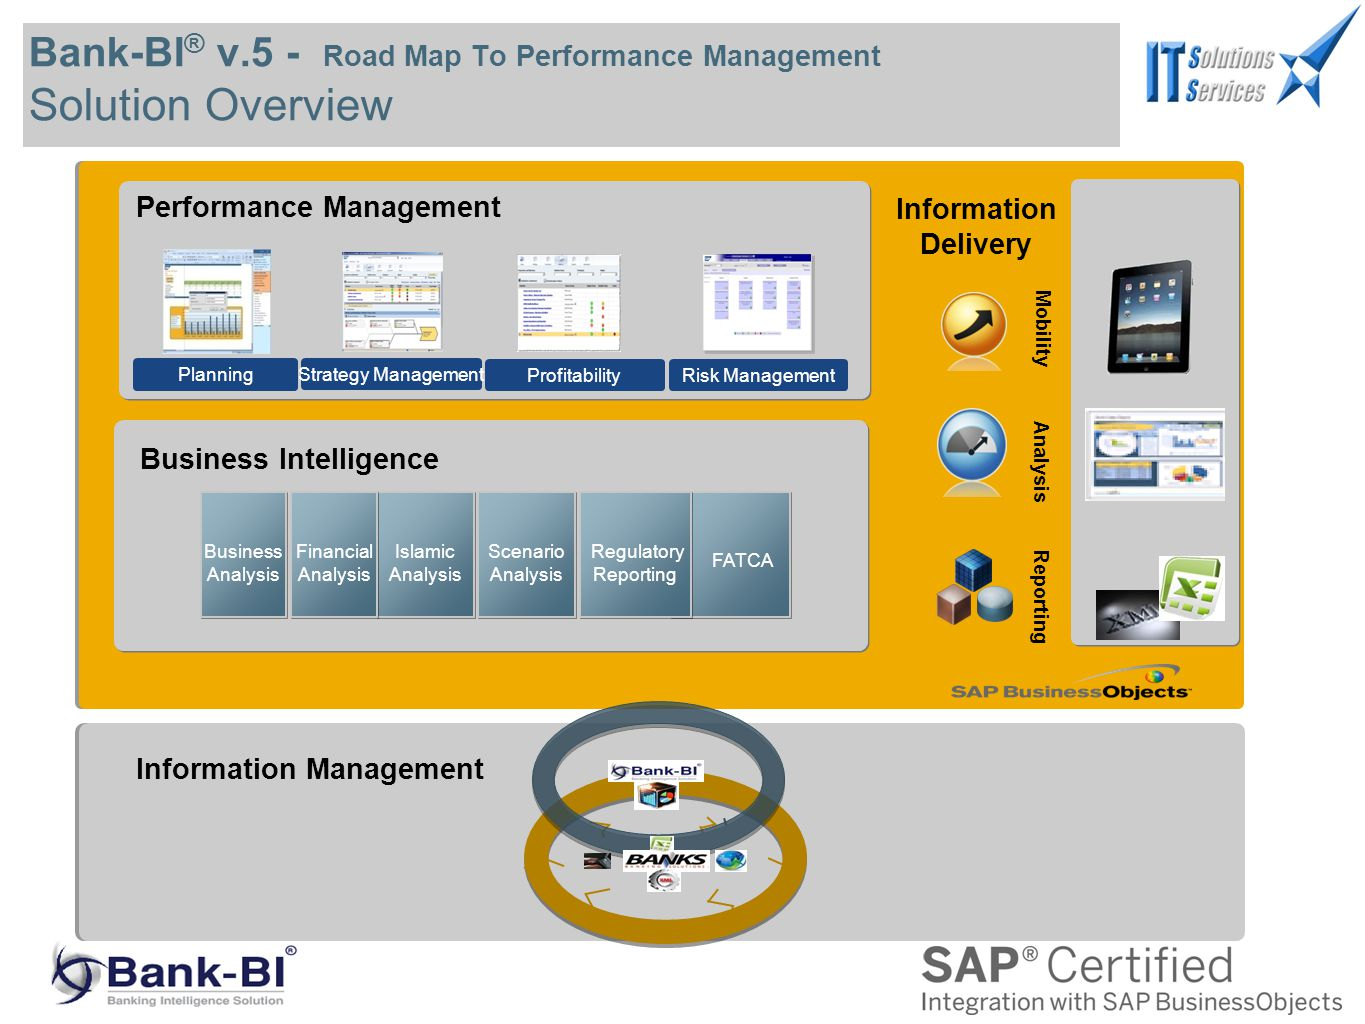 Bank-BI ® v.5 - Road Map To Performance Management Solution Overview Profitability Information Management Islamic Analysis Financial Analysis Scenario Analysis FATCA Business Analysis Regulatory Reporting Business Intelligence Performance Management Planning ProfitabilityRisk Management Strategy Management Information Delivery Mobility Analysis Reporting